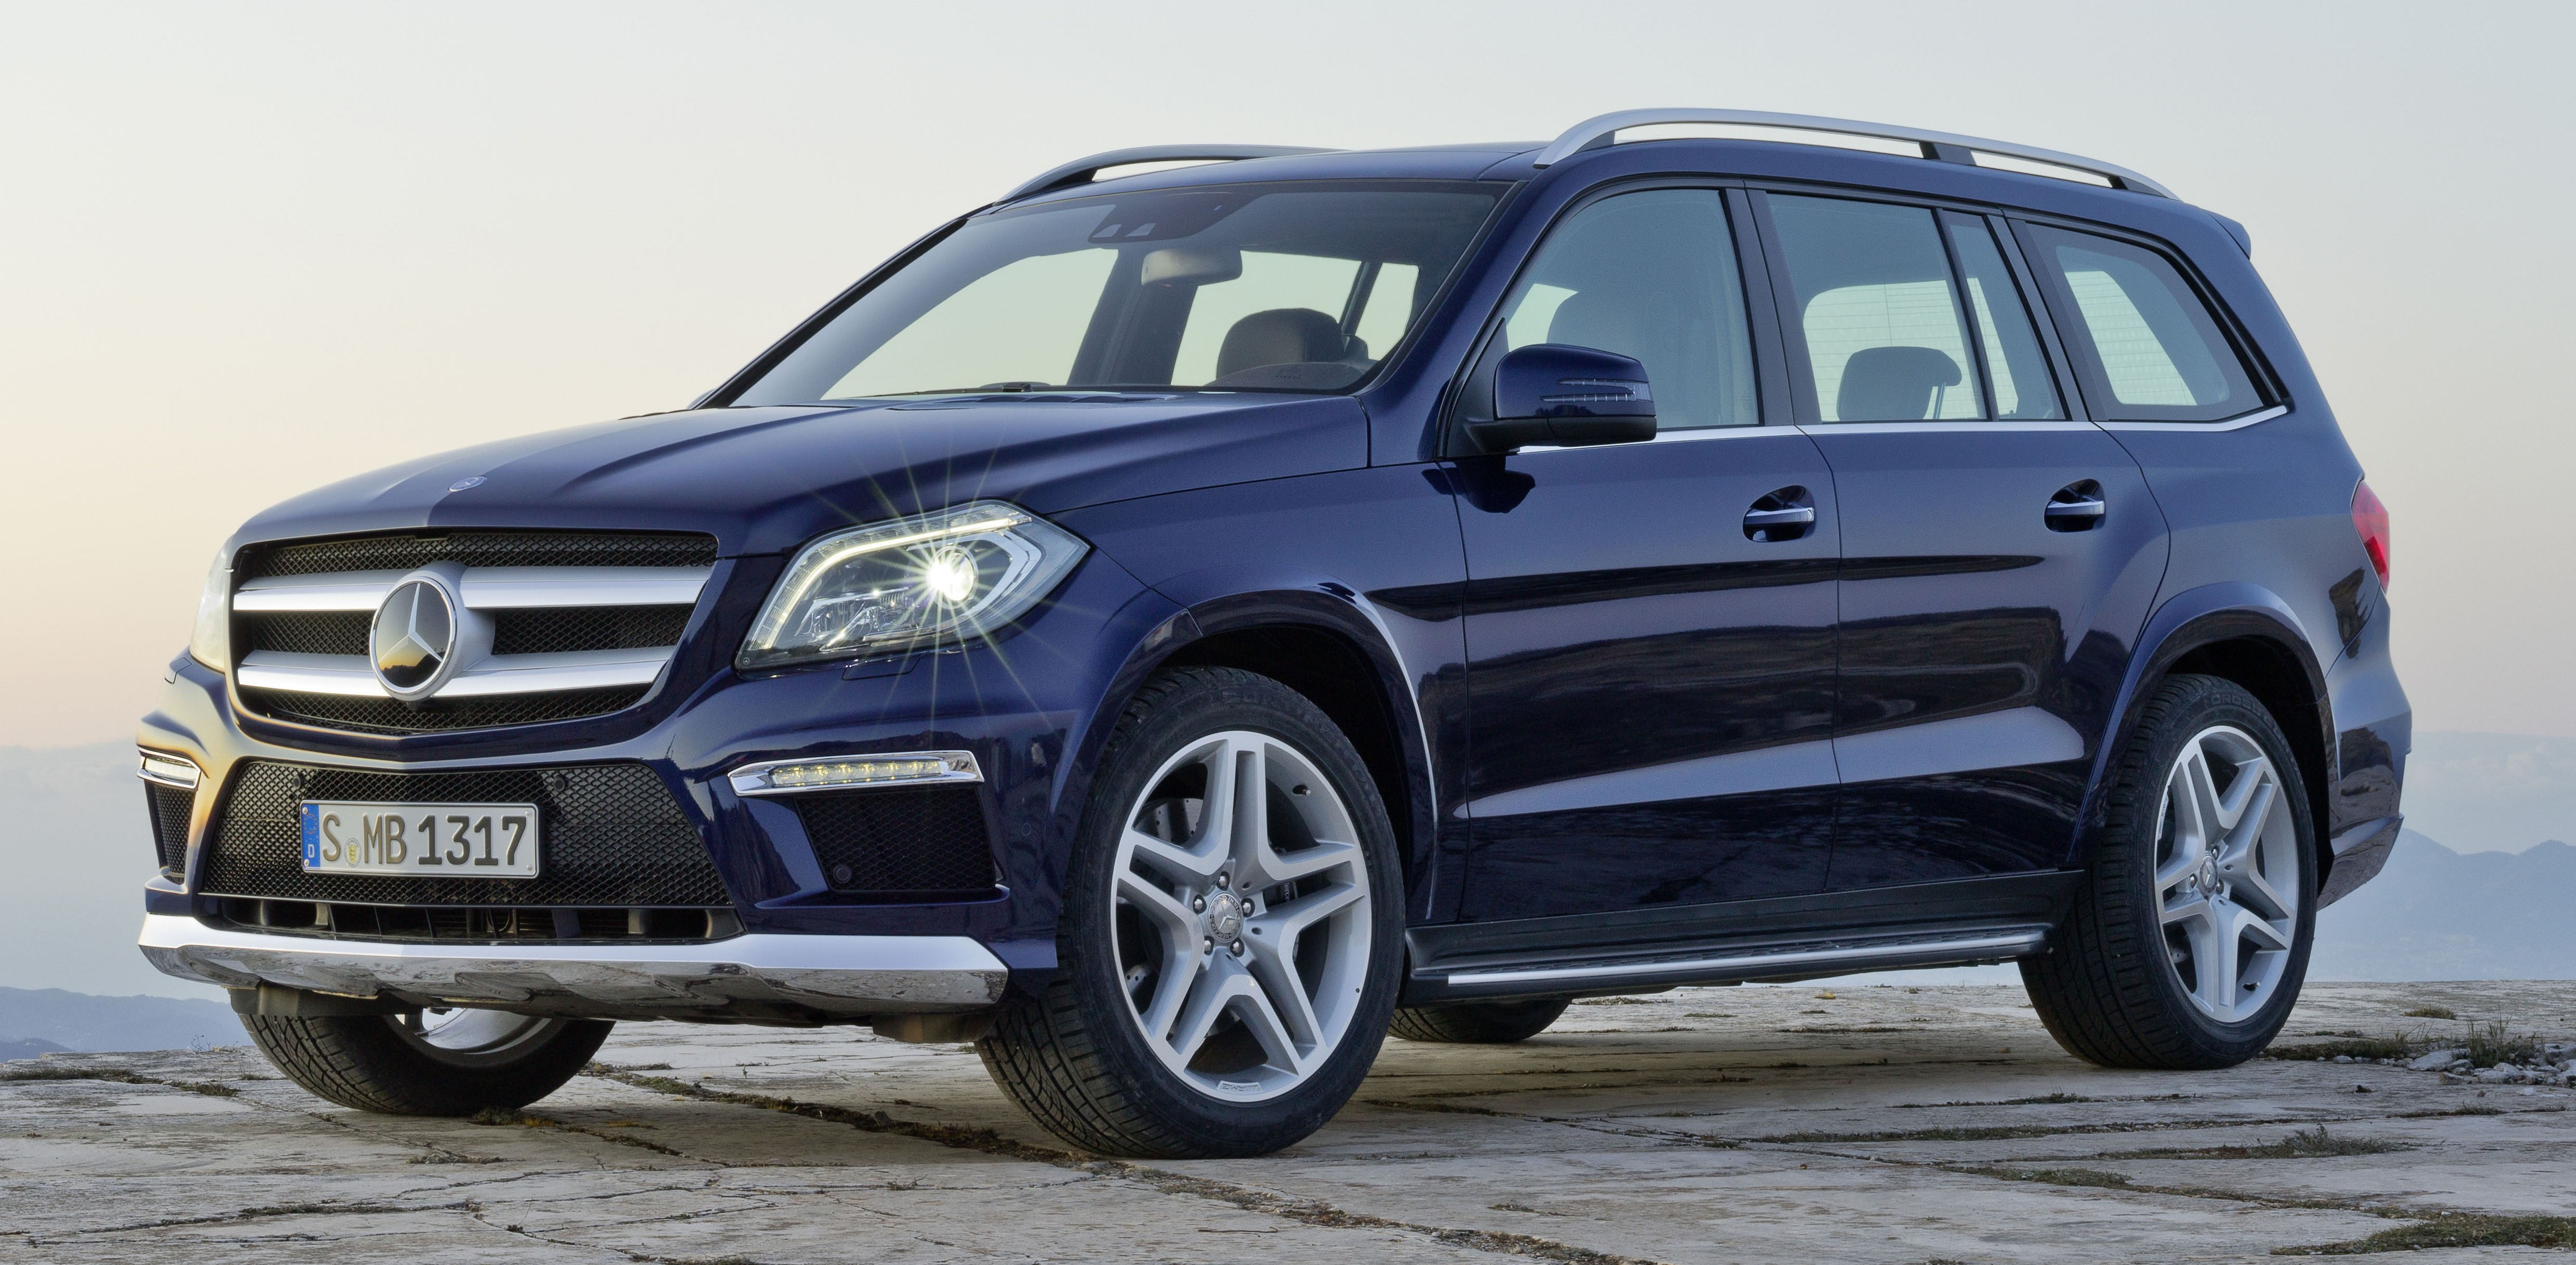 Mercedes benz gl 400 price announced rm842 888 for a for Mercedes benz gl550 price